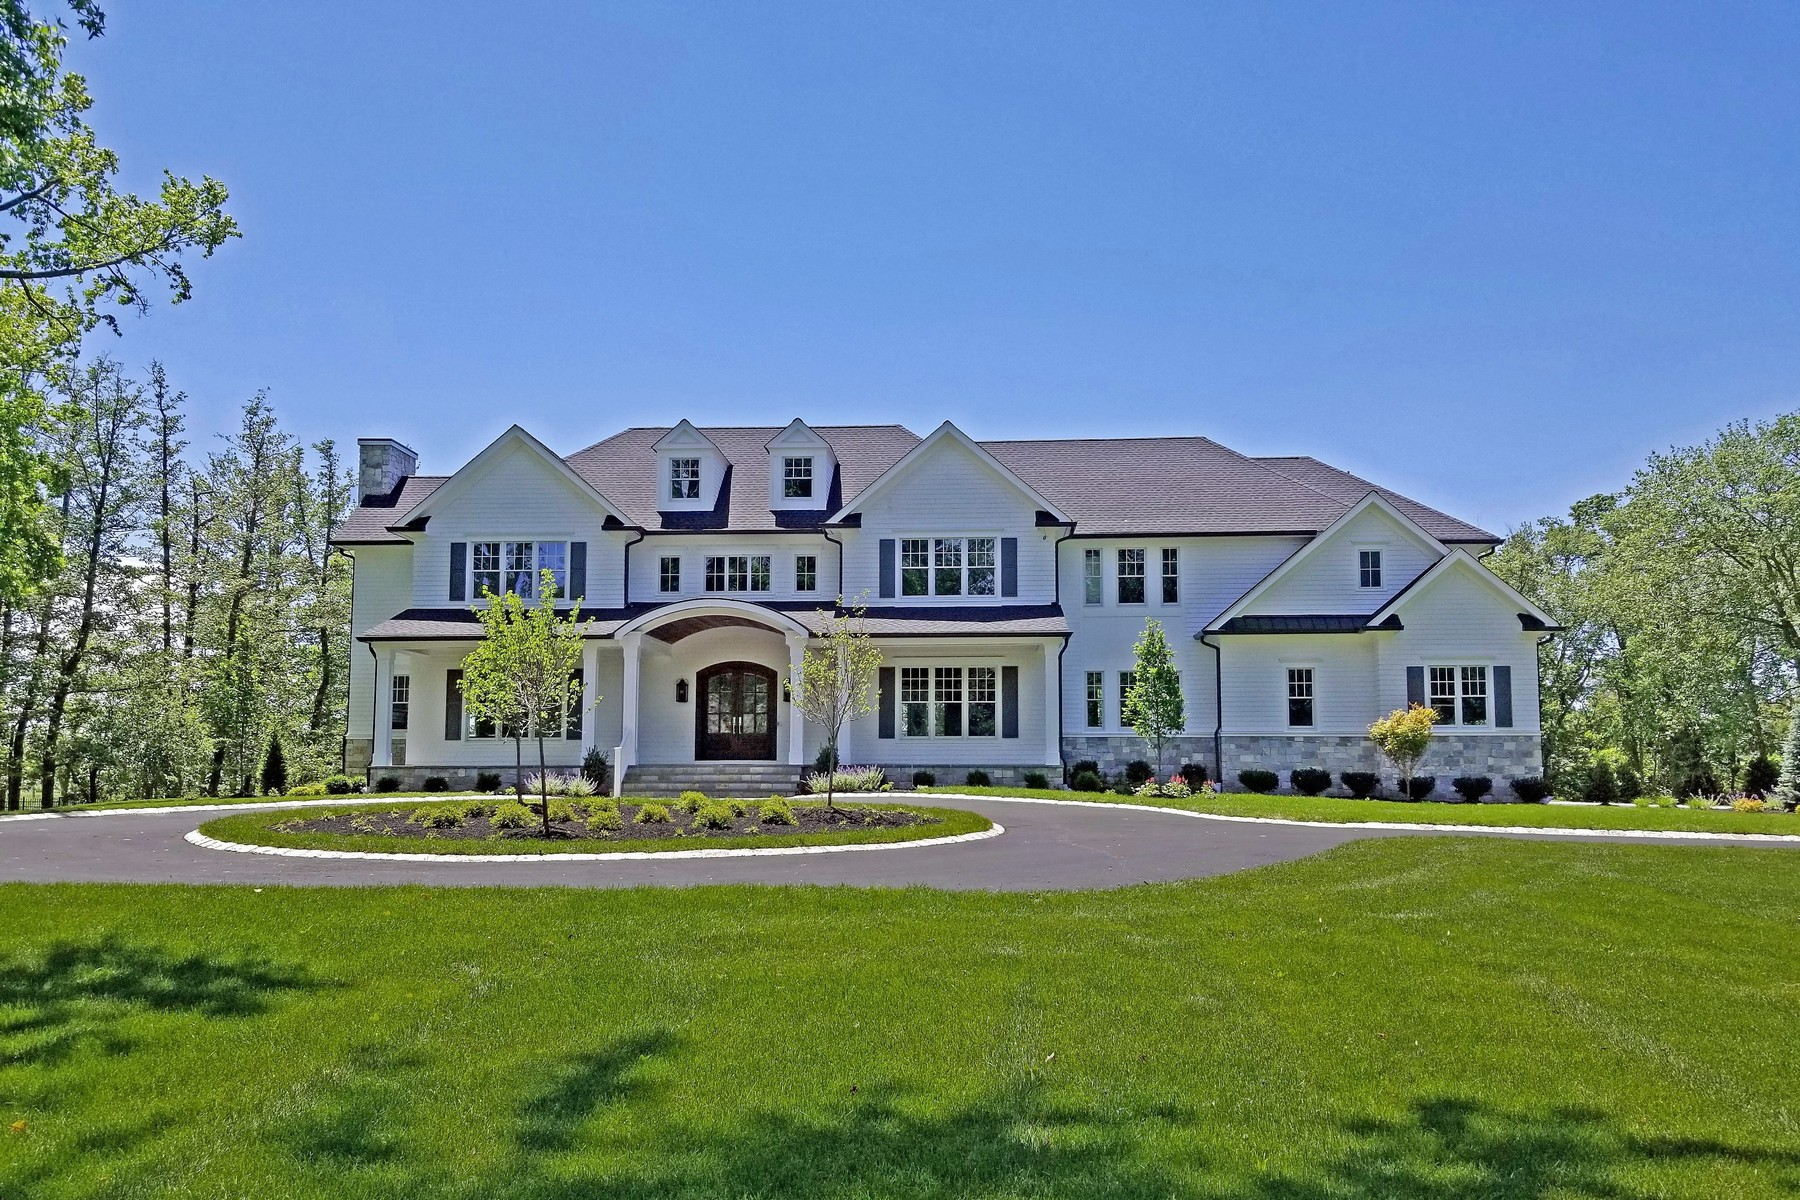 Single Family Homes for Sale at LUXURIOUS ESCAPE 22 Conover Ln Rumson, New Jersey 07760 United States